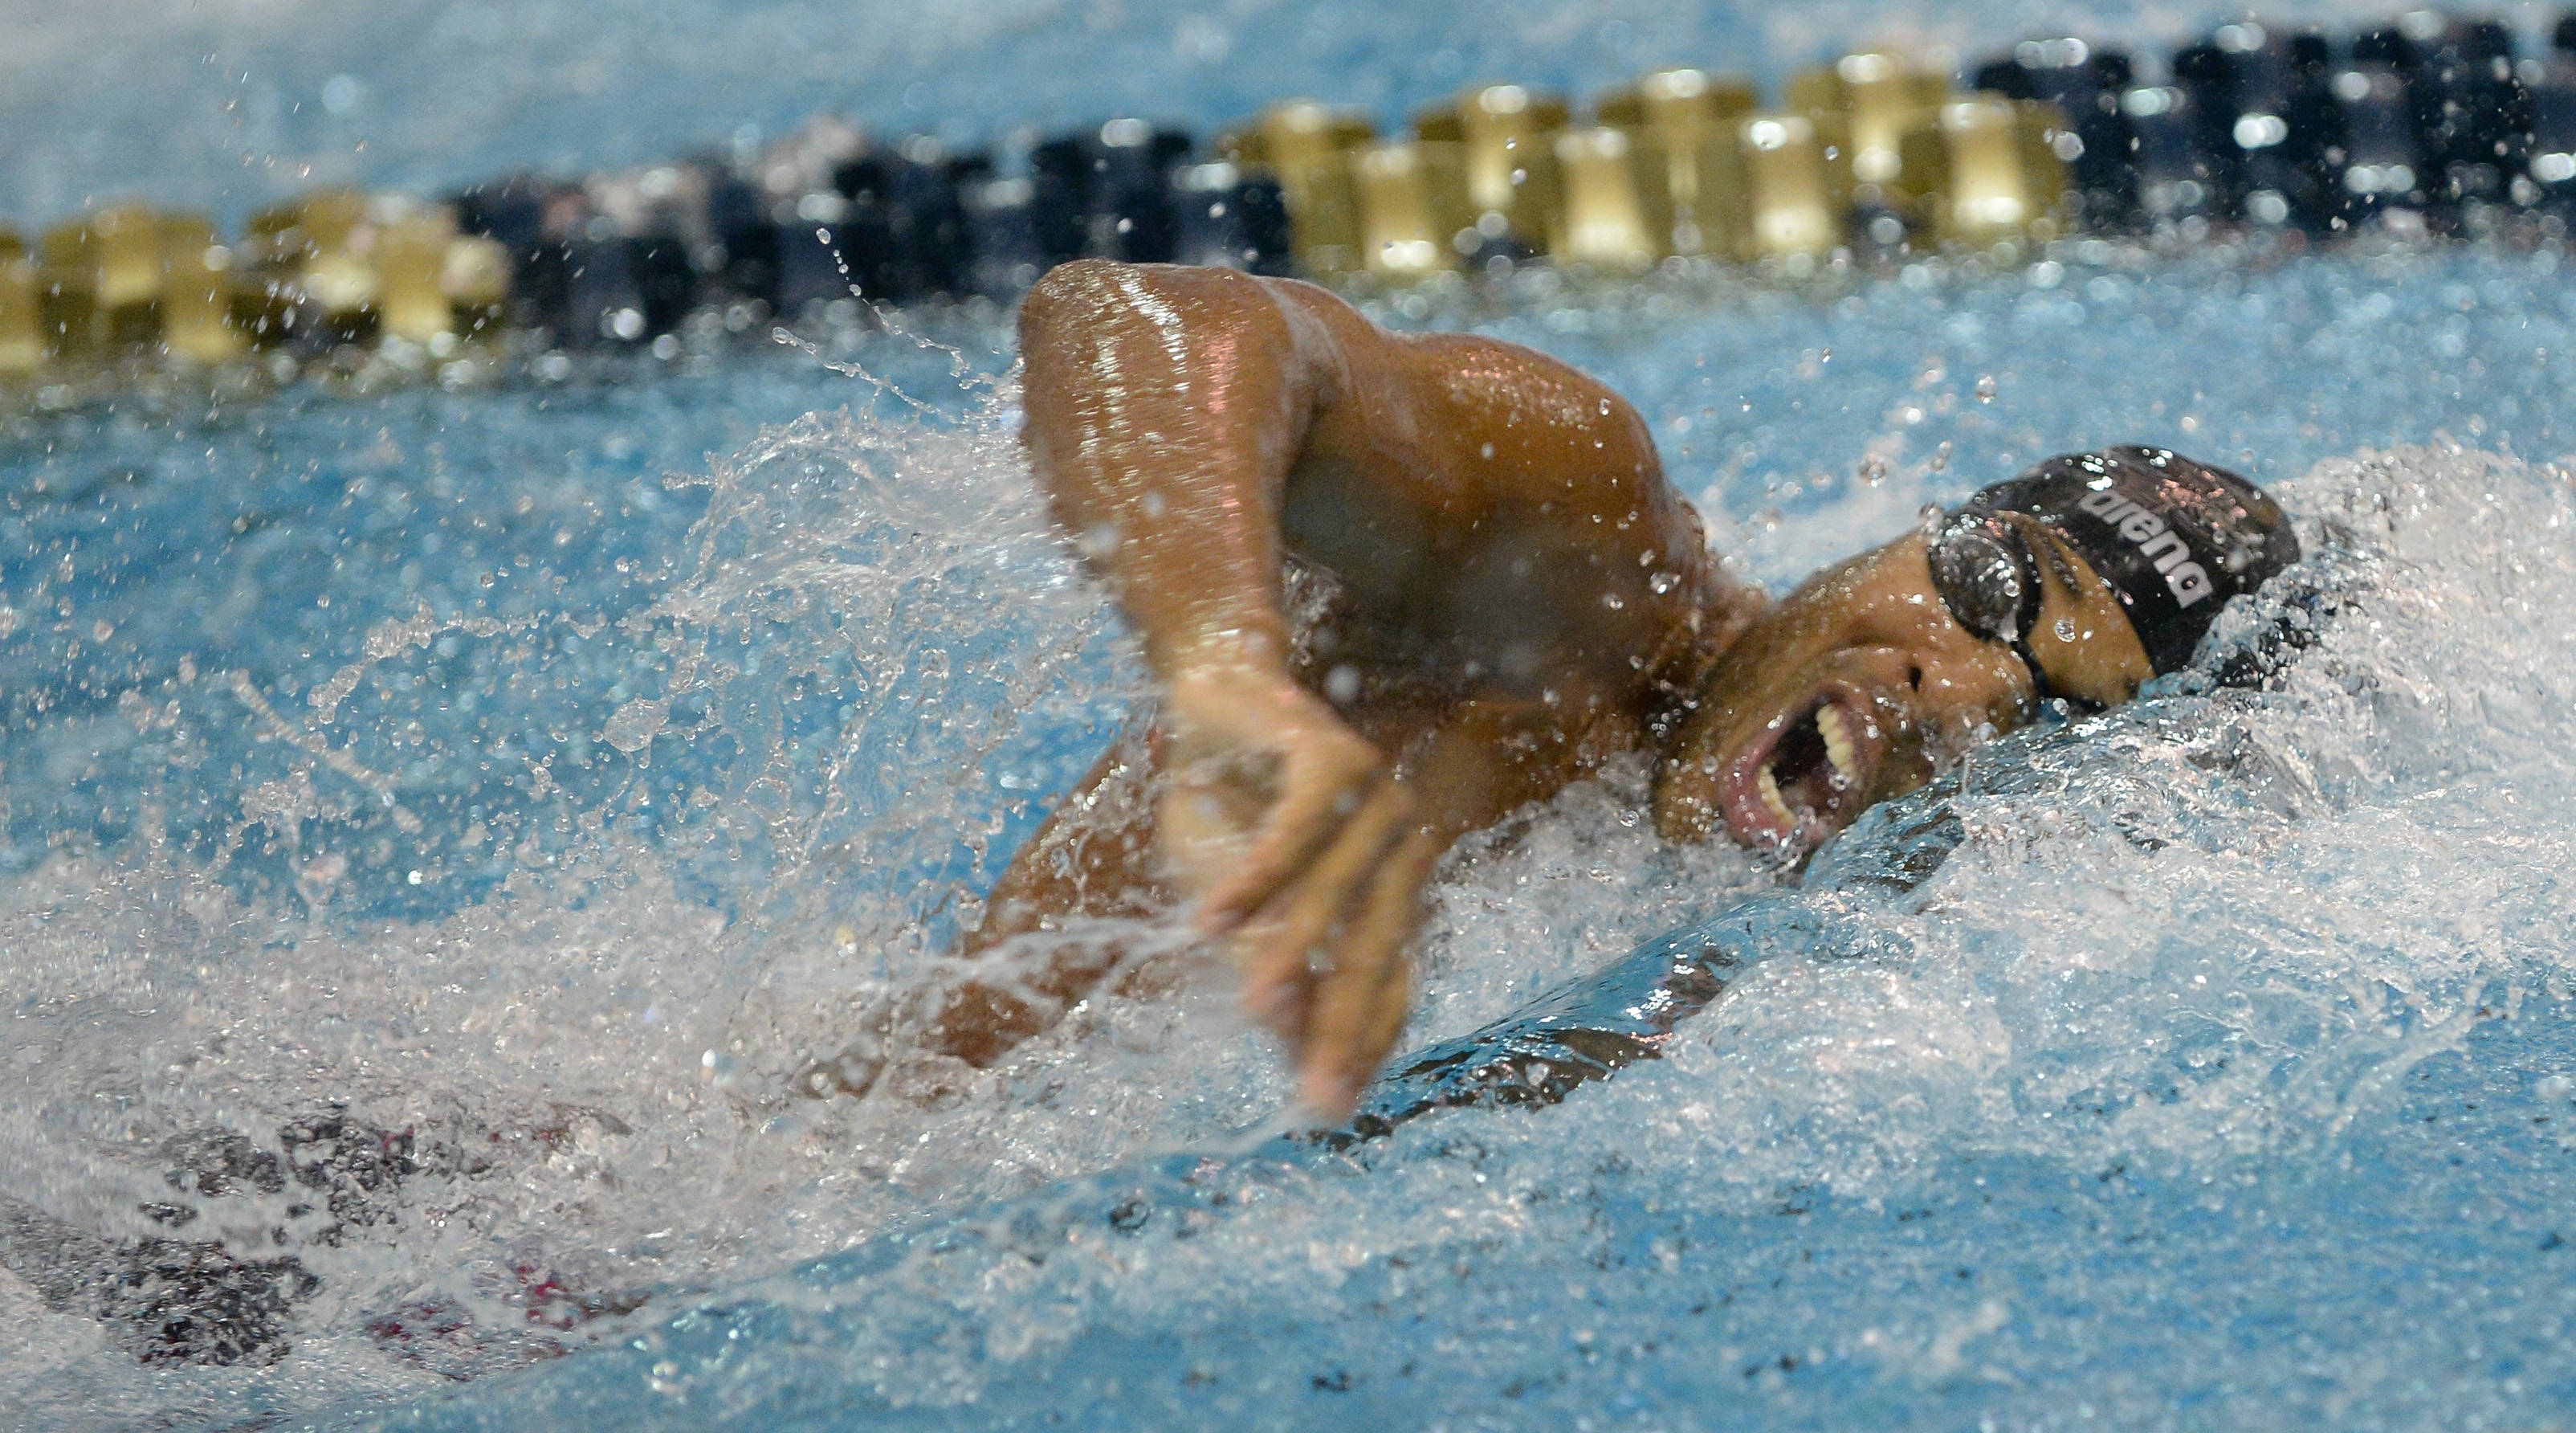 Cadell Lyons in the 400 free relay - Mitch White